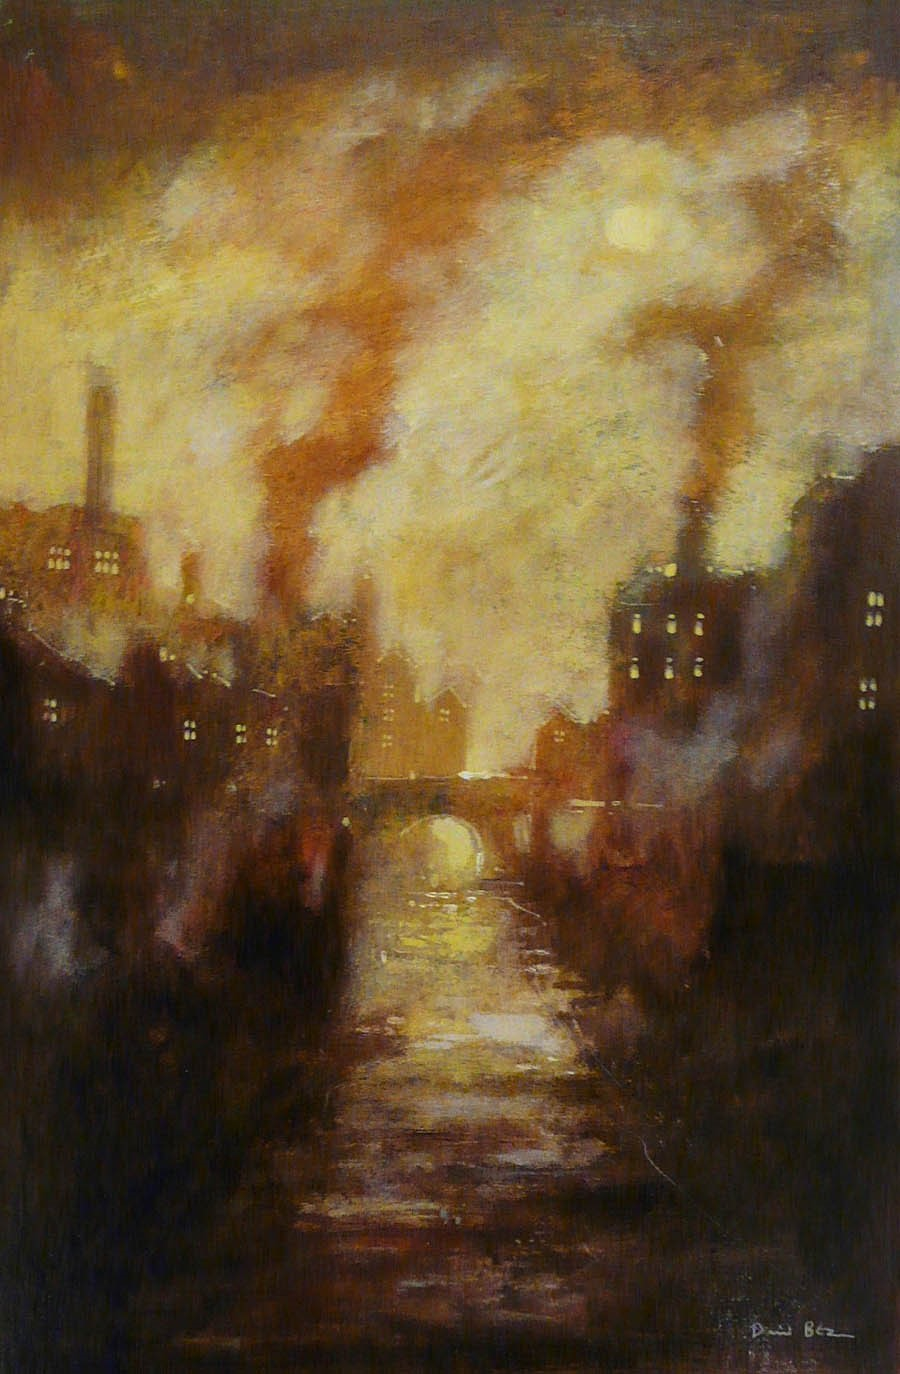 Sun through Mist by David Bez